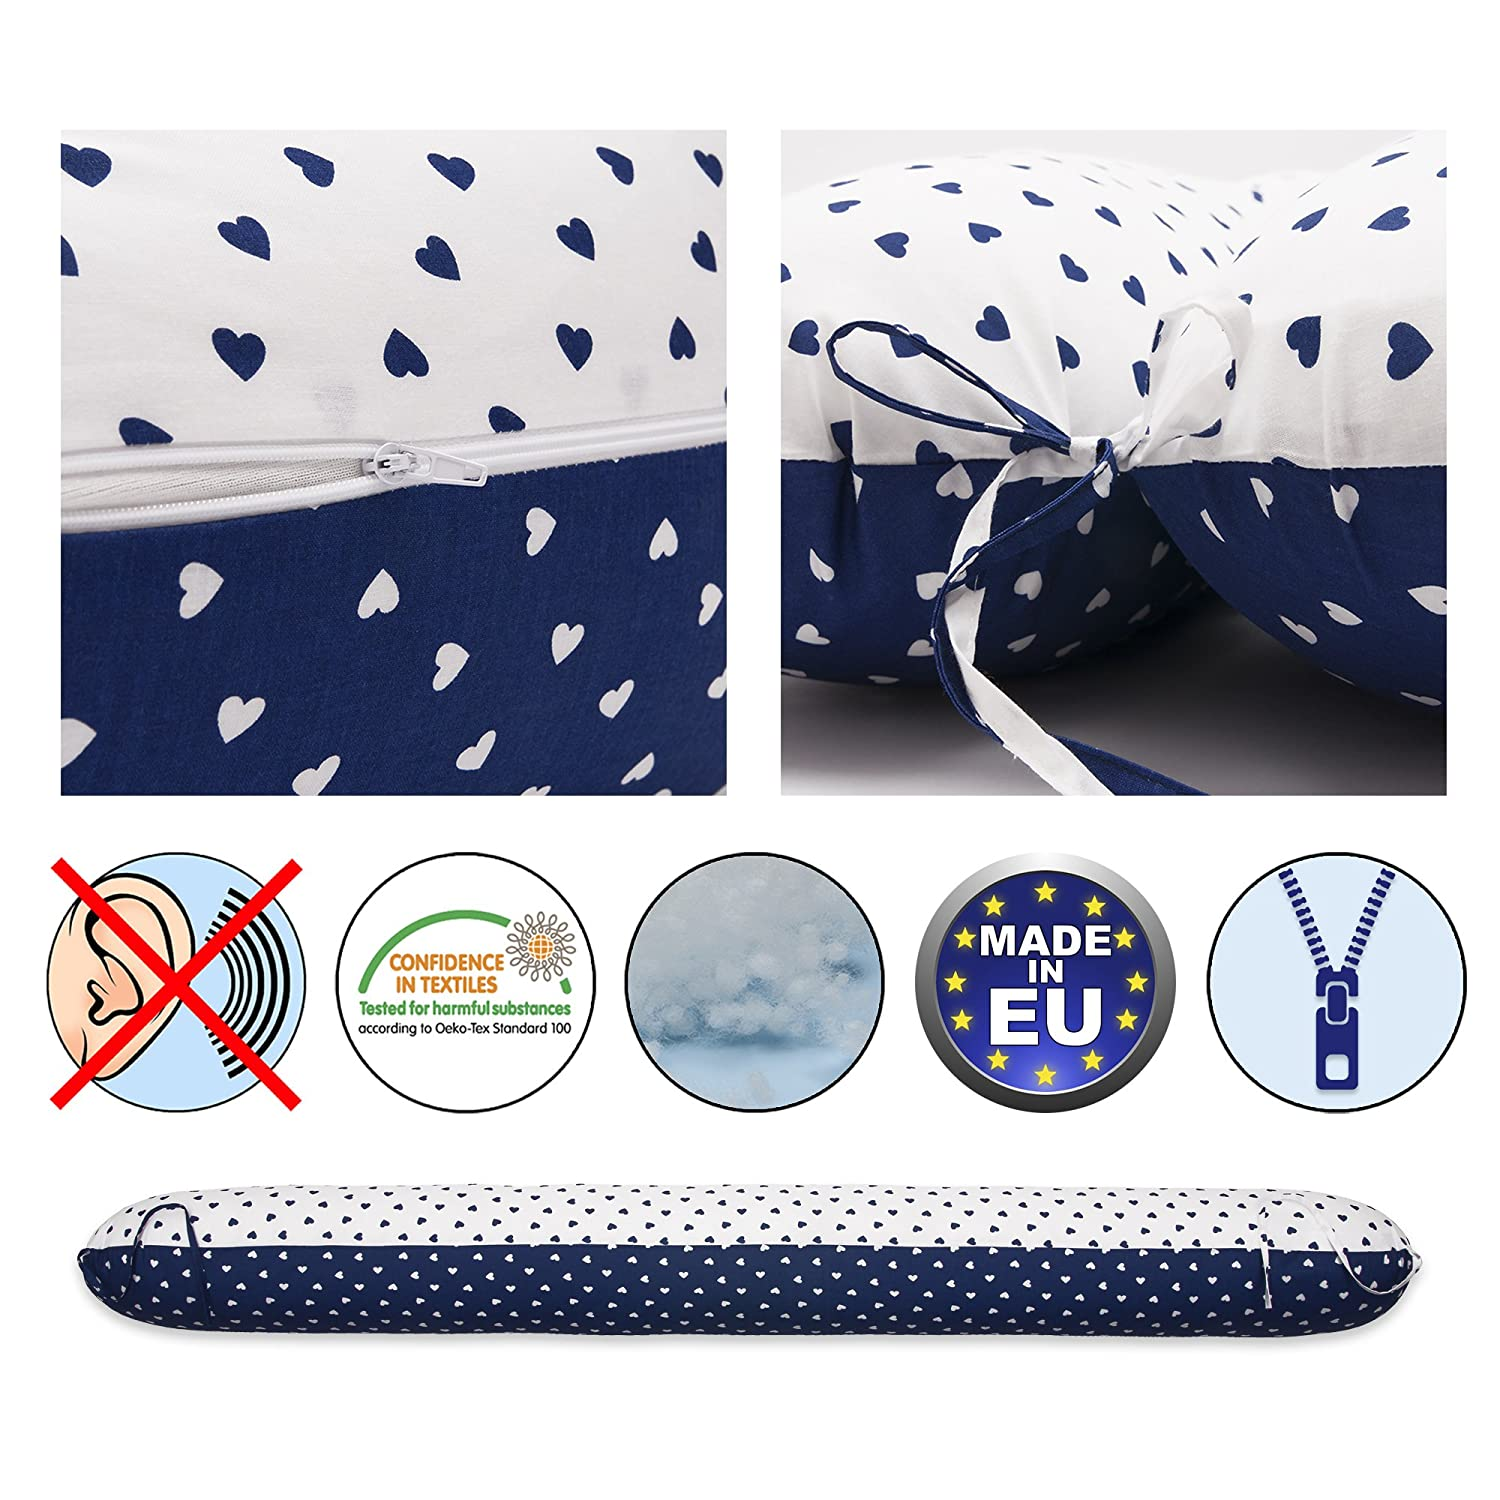 Scamp Nursing Pillow Universal Pregnancy Pillow with Cover Various Designs